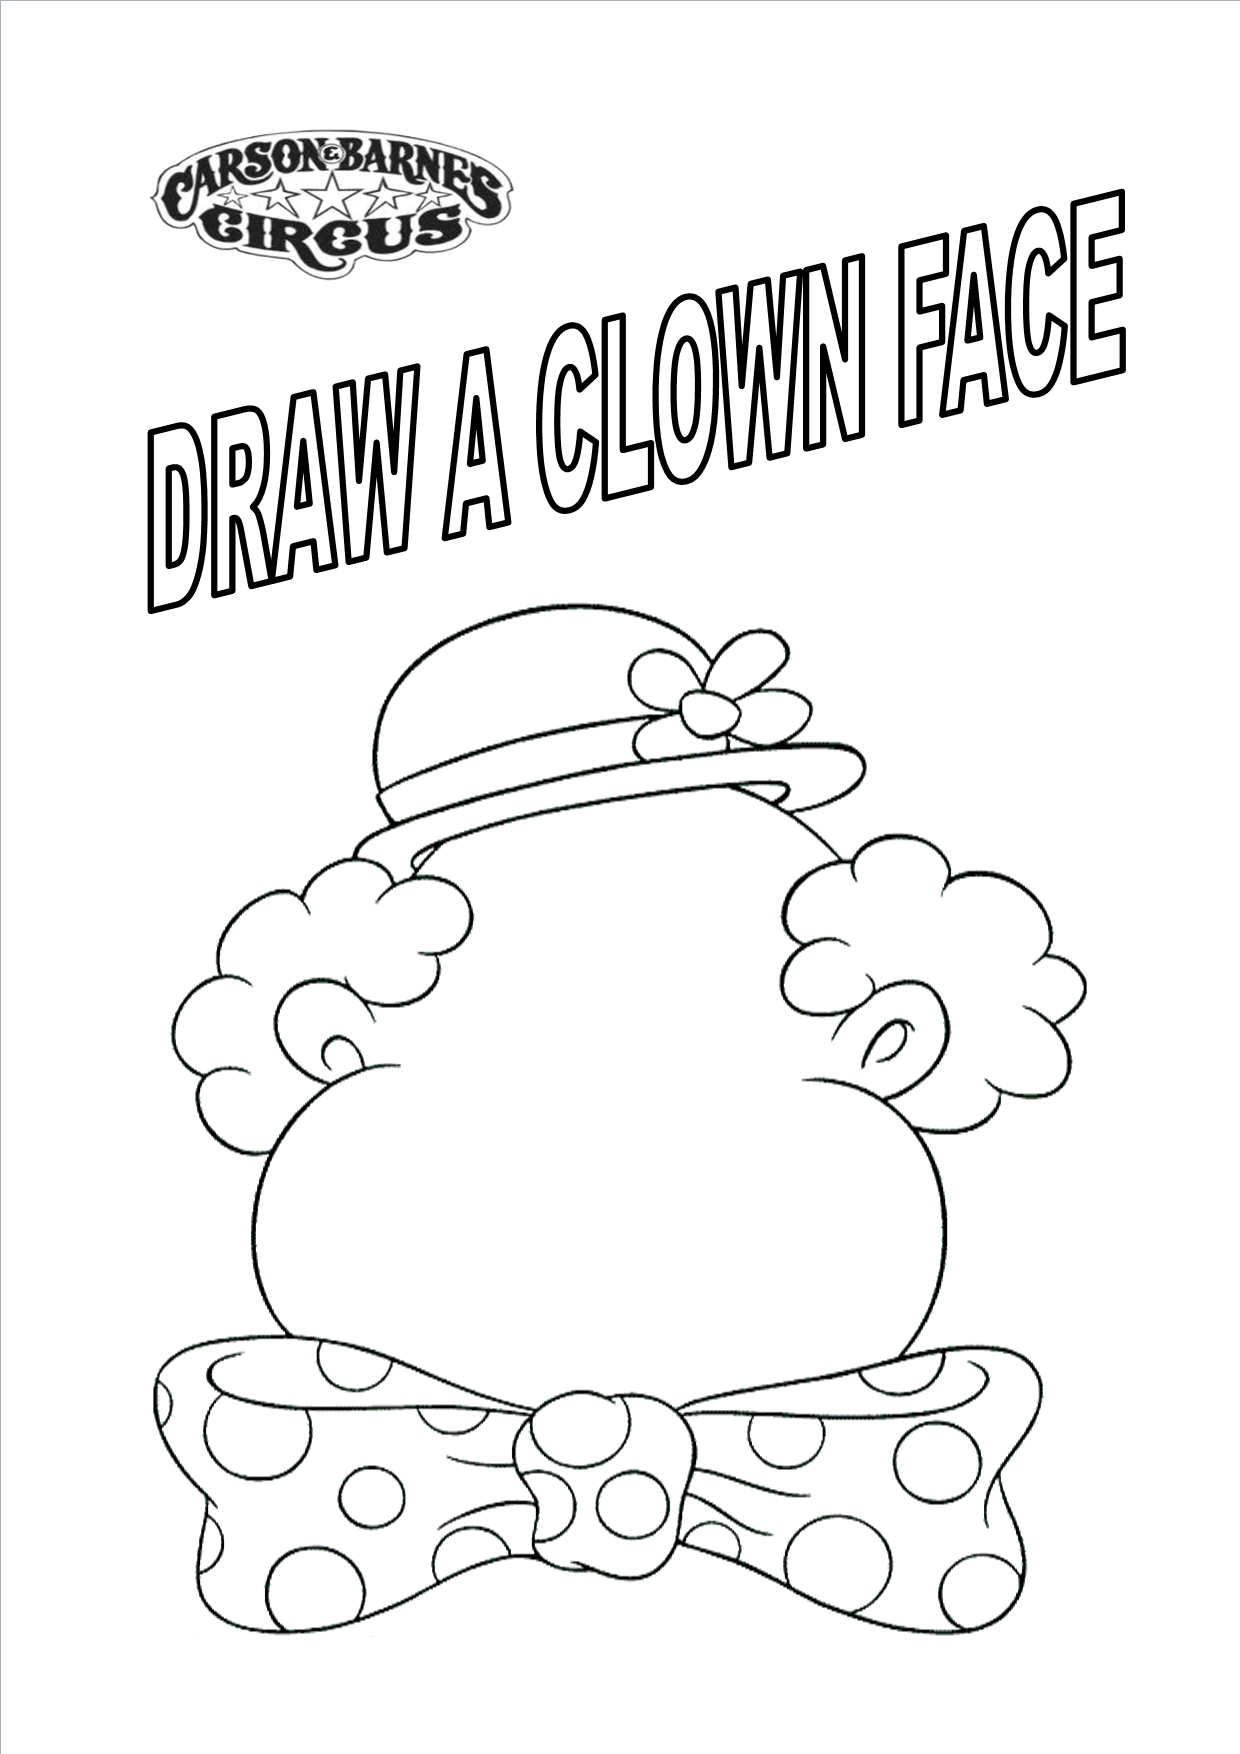 Circus coloring pages to download and print for free